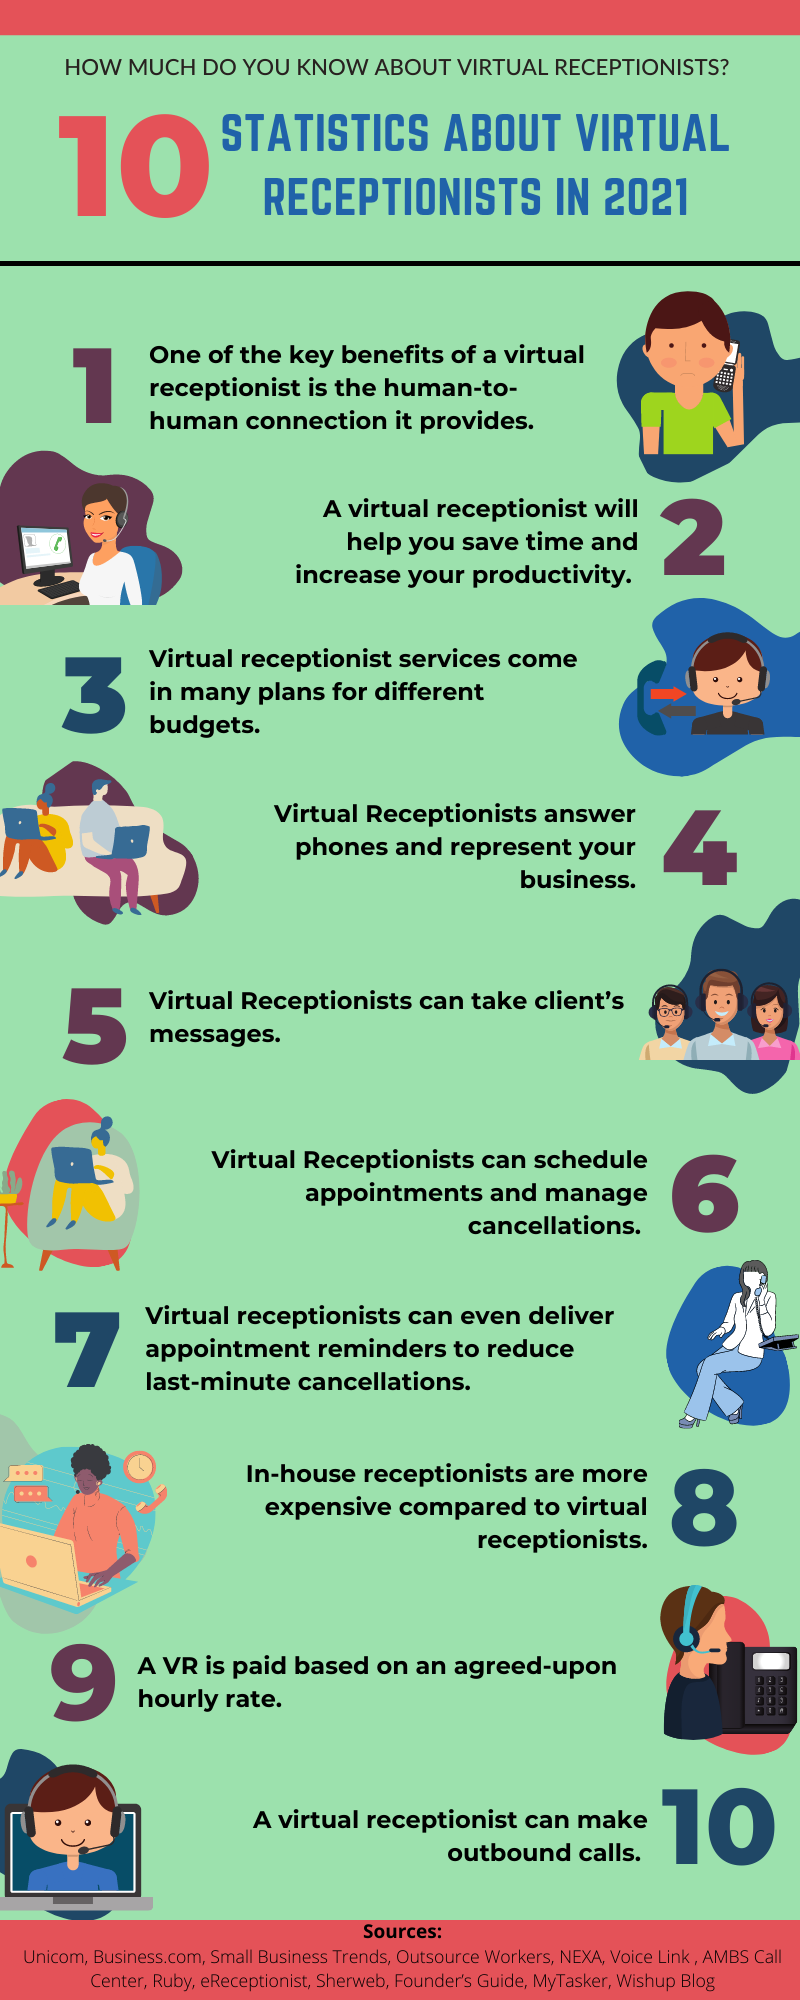 Reliable Receptionist - How Much Do You Know About Virtual Receptionists 101 Statistics about Virtual Receptionists in 2021